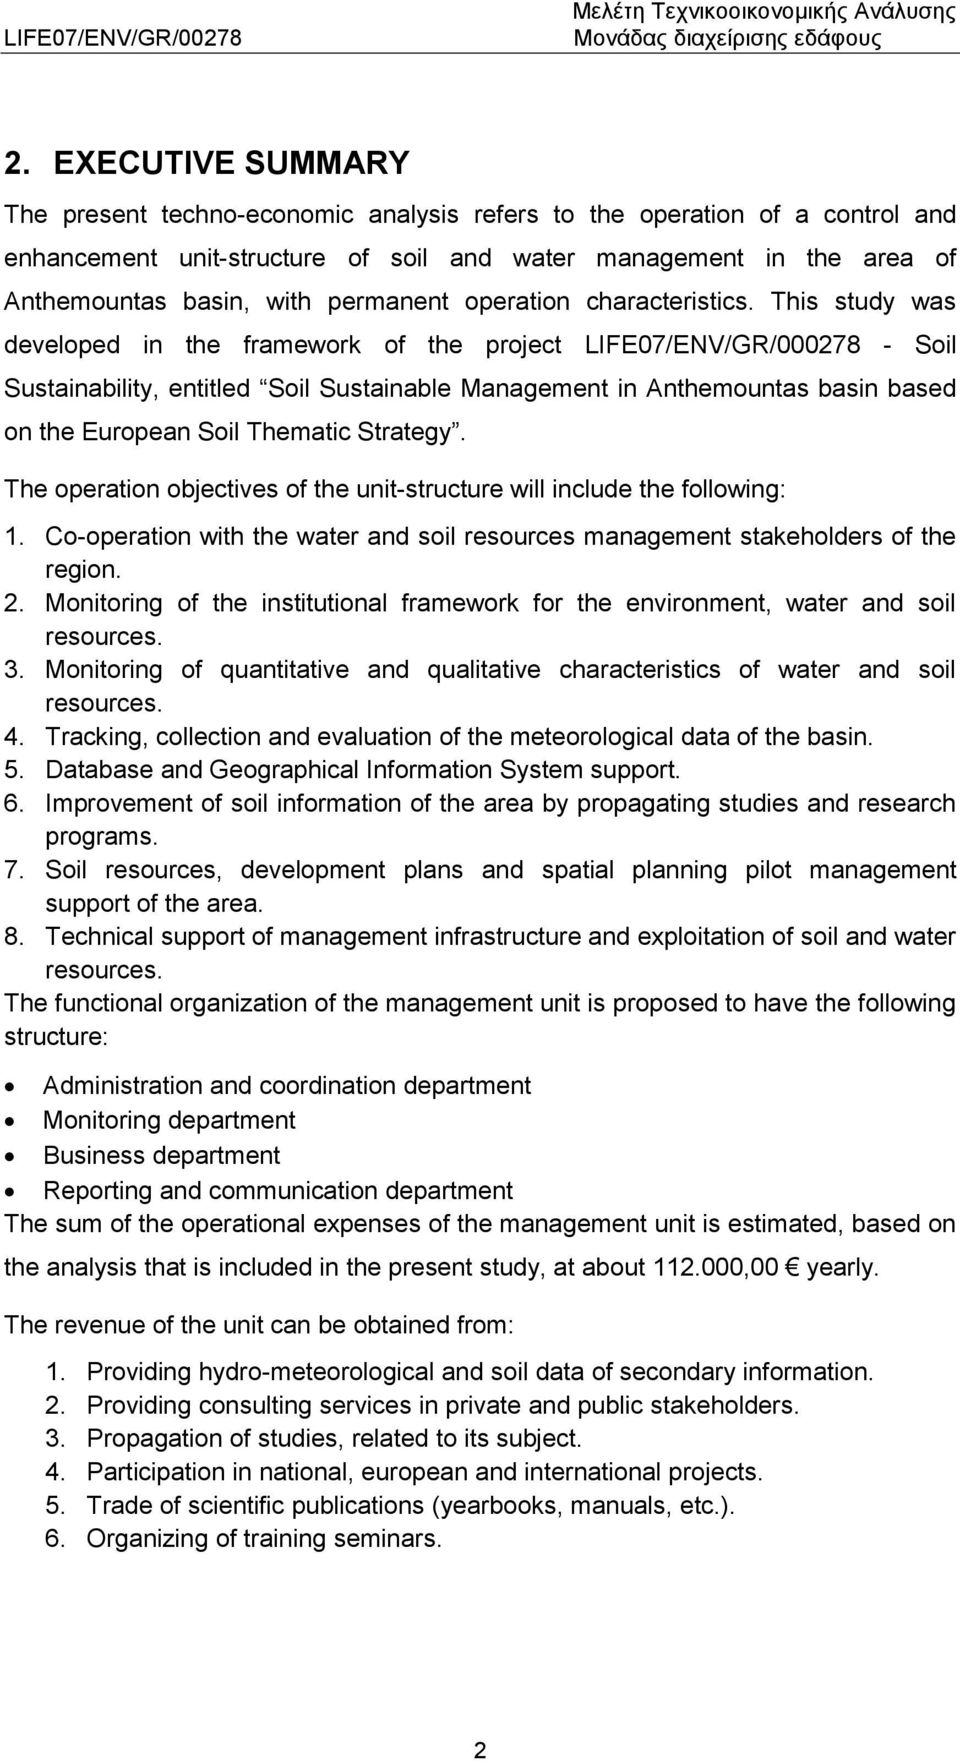 This study was developed in the framework of the project LIFE07/ENV/GR/000278 - Soil Sustainability, entitled Soil Sustainable Management in Anthemountas basin based on the European Soil Thematic